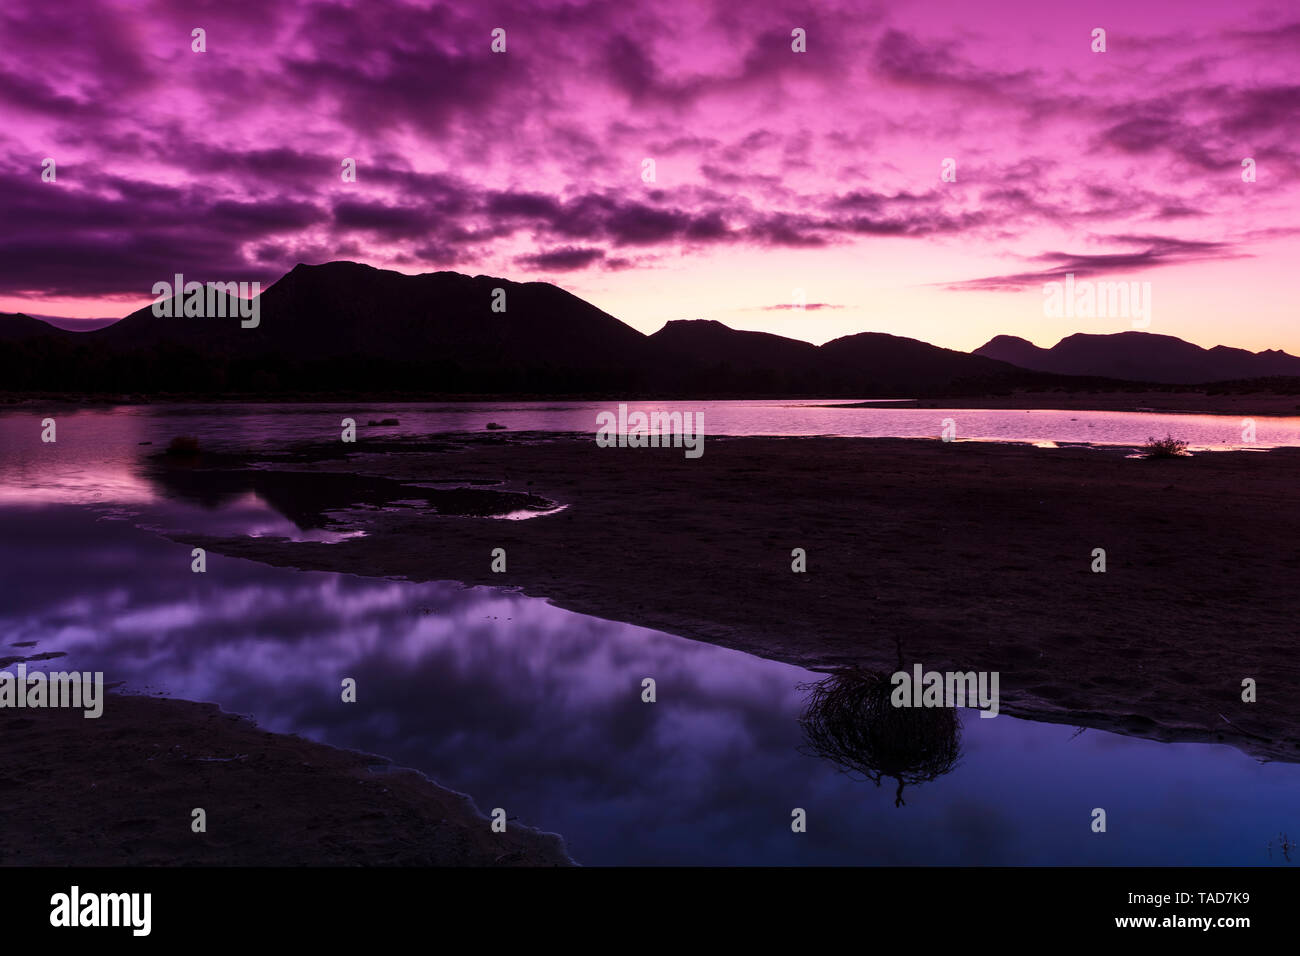 South Africa, Cape Town, coast in the evening - Stock Image